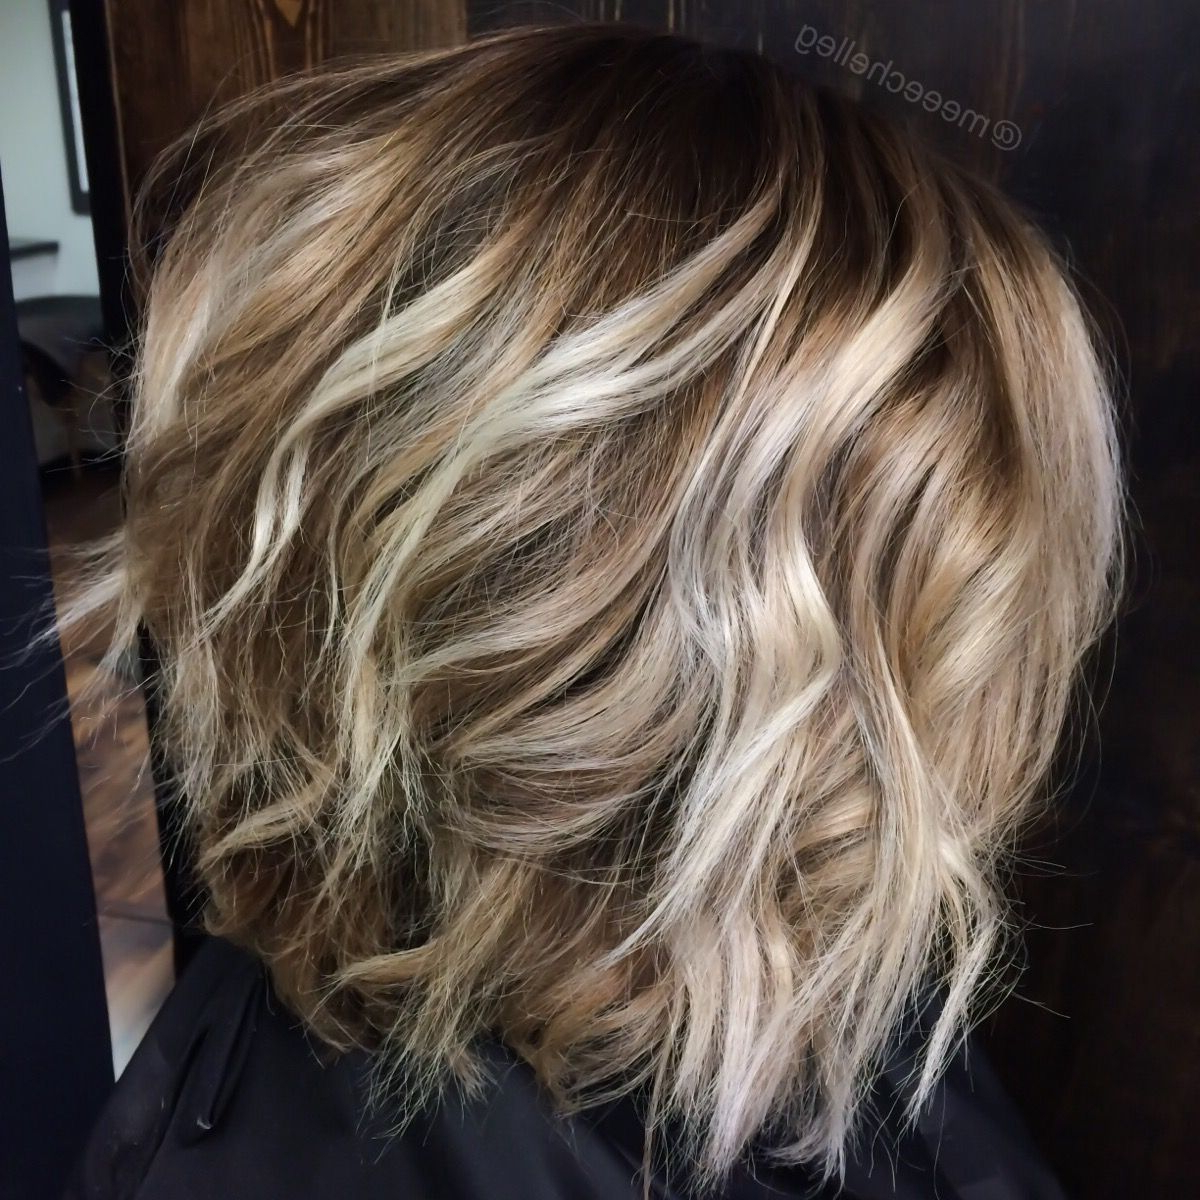 Bob, Blonde, Highlights, Lowlights, Bright Blonde Pieces, Waves For Short Bob Hairstyles With Whipped Curls And Babylights (View 5 of 25)